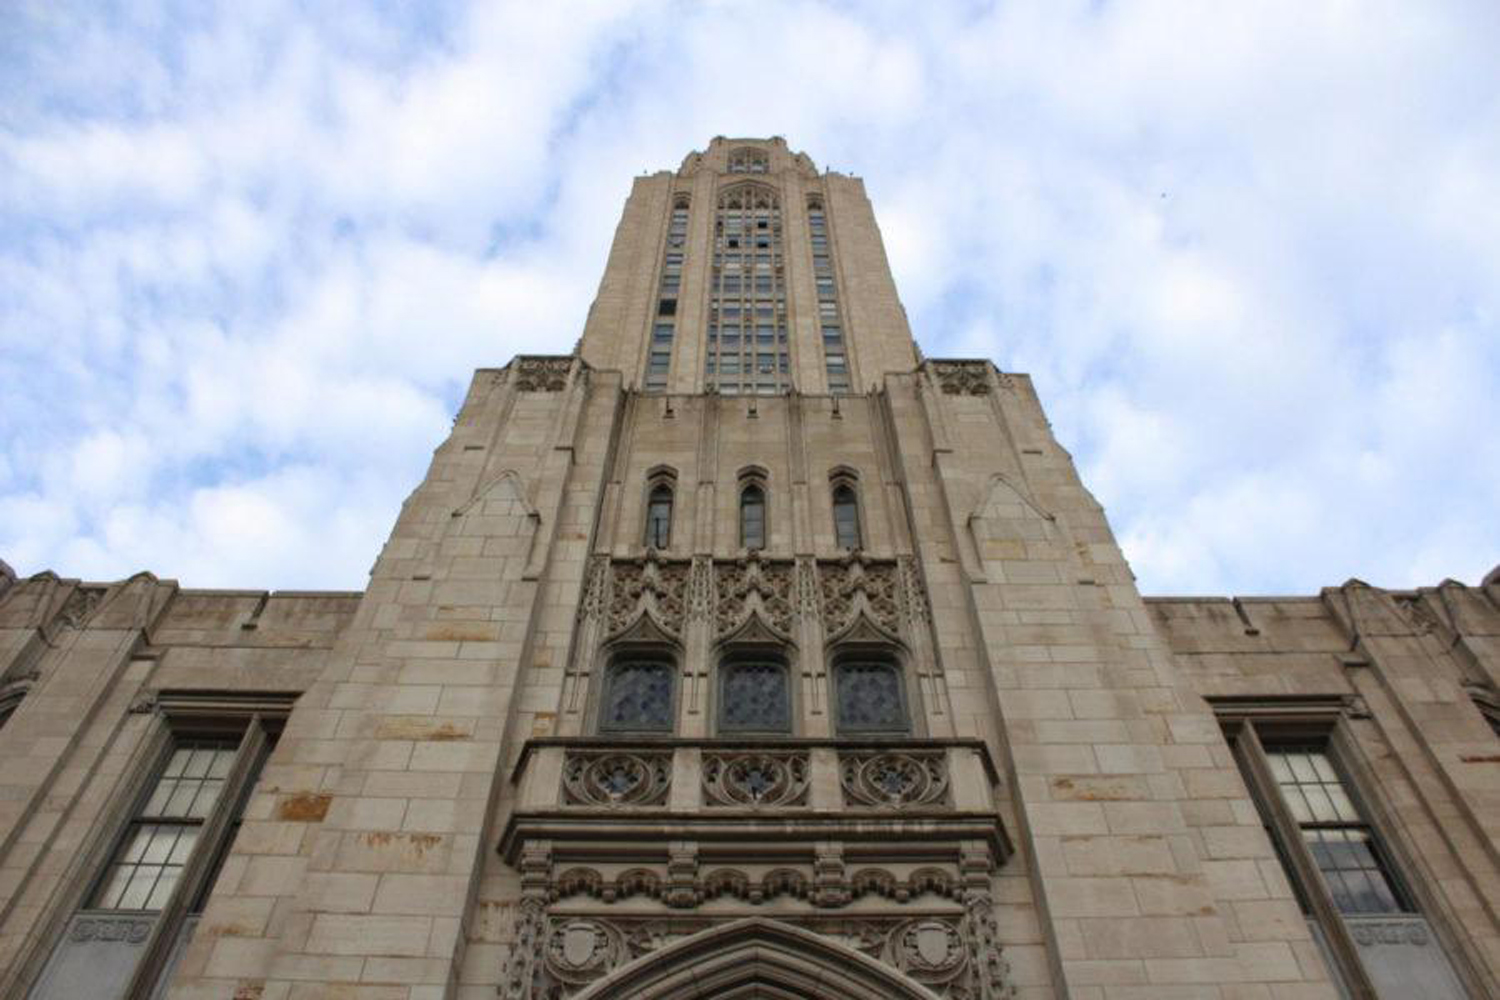 Tuition will rise about 3 percent for in-state students next year, and about 5 percent for out-of-state students.